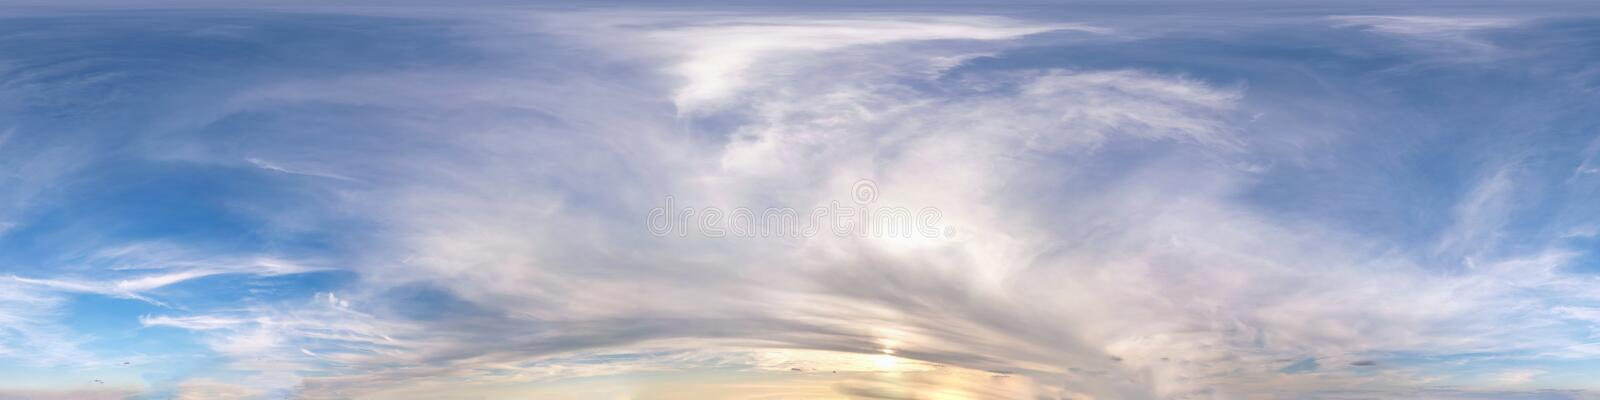 Seamless evening sky before sunset hdri panorama 360 degrees angle view with beautiful clouds  with zenith for use in 3d graphics. As sky dome or edit drone stock image